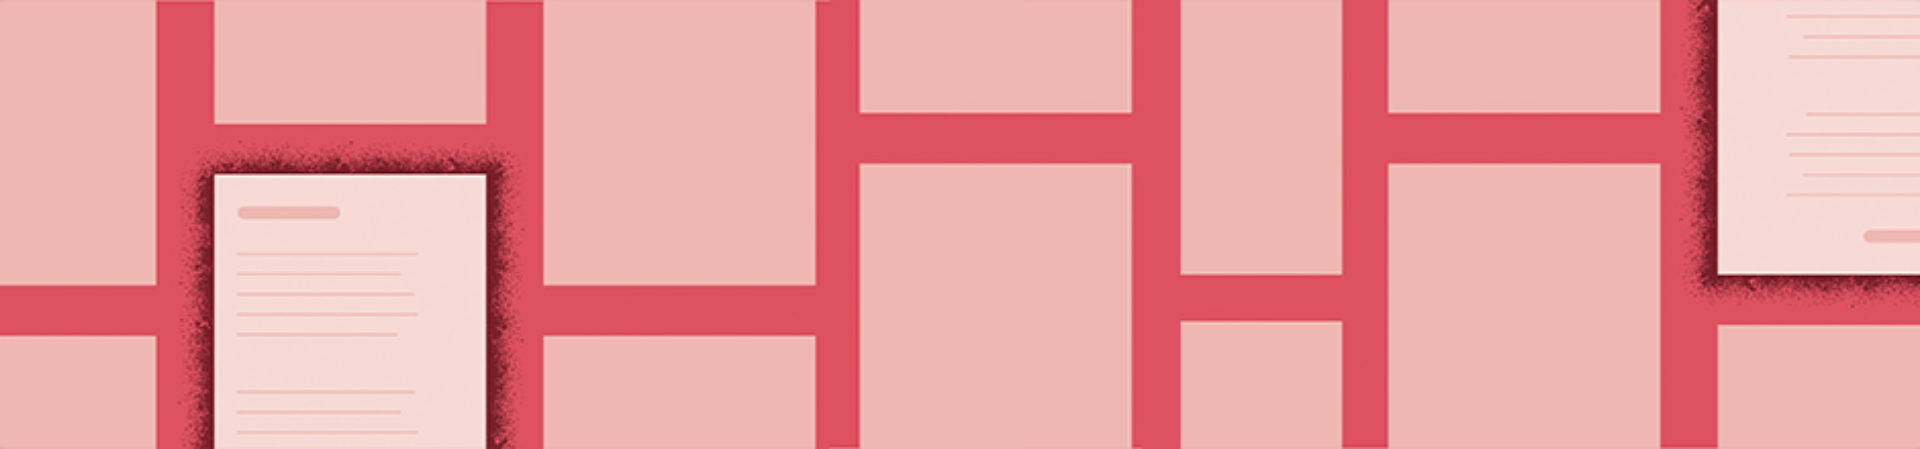 Graphic design of rectangles that mimic pieces of paper